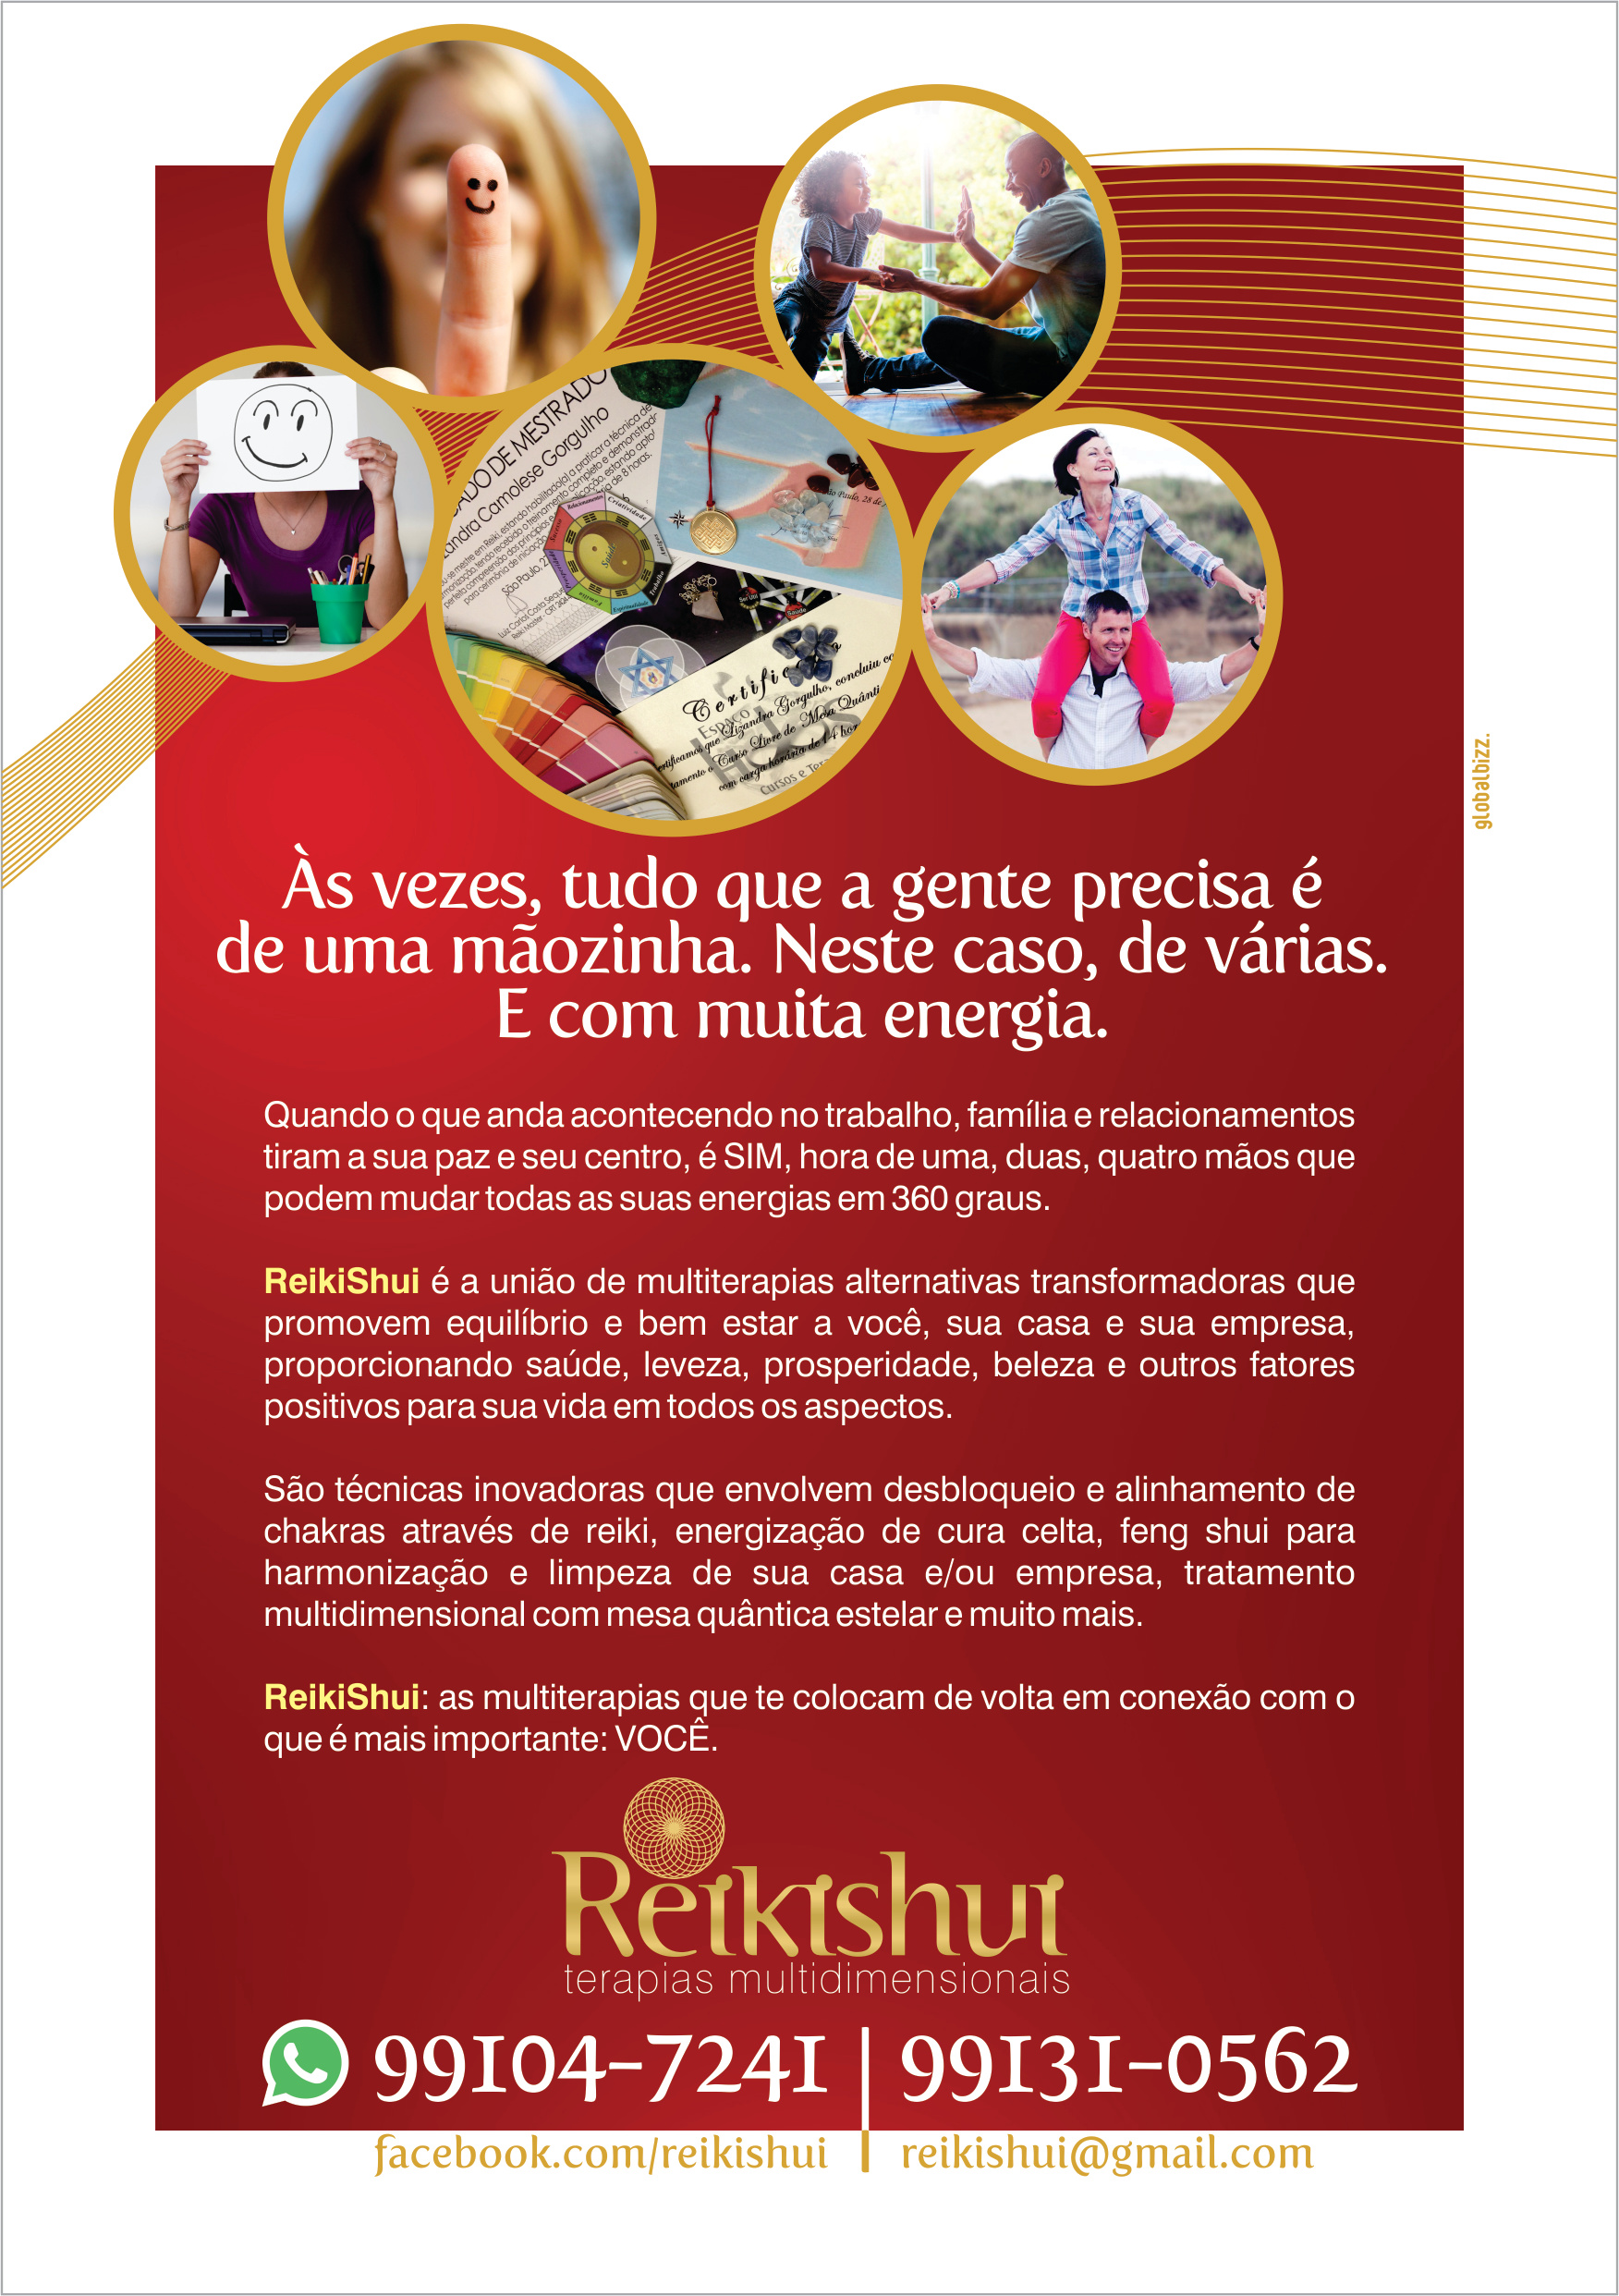 +E-mail marketing - Reikishui